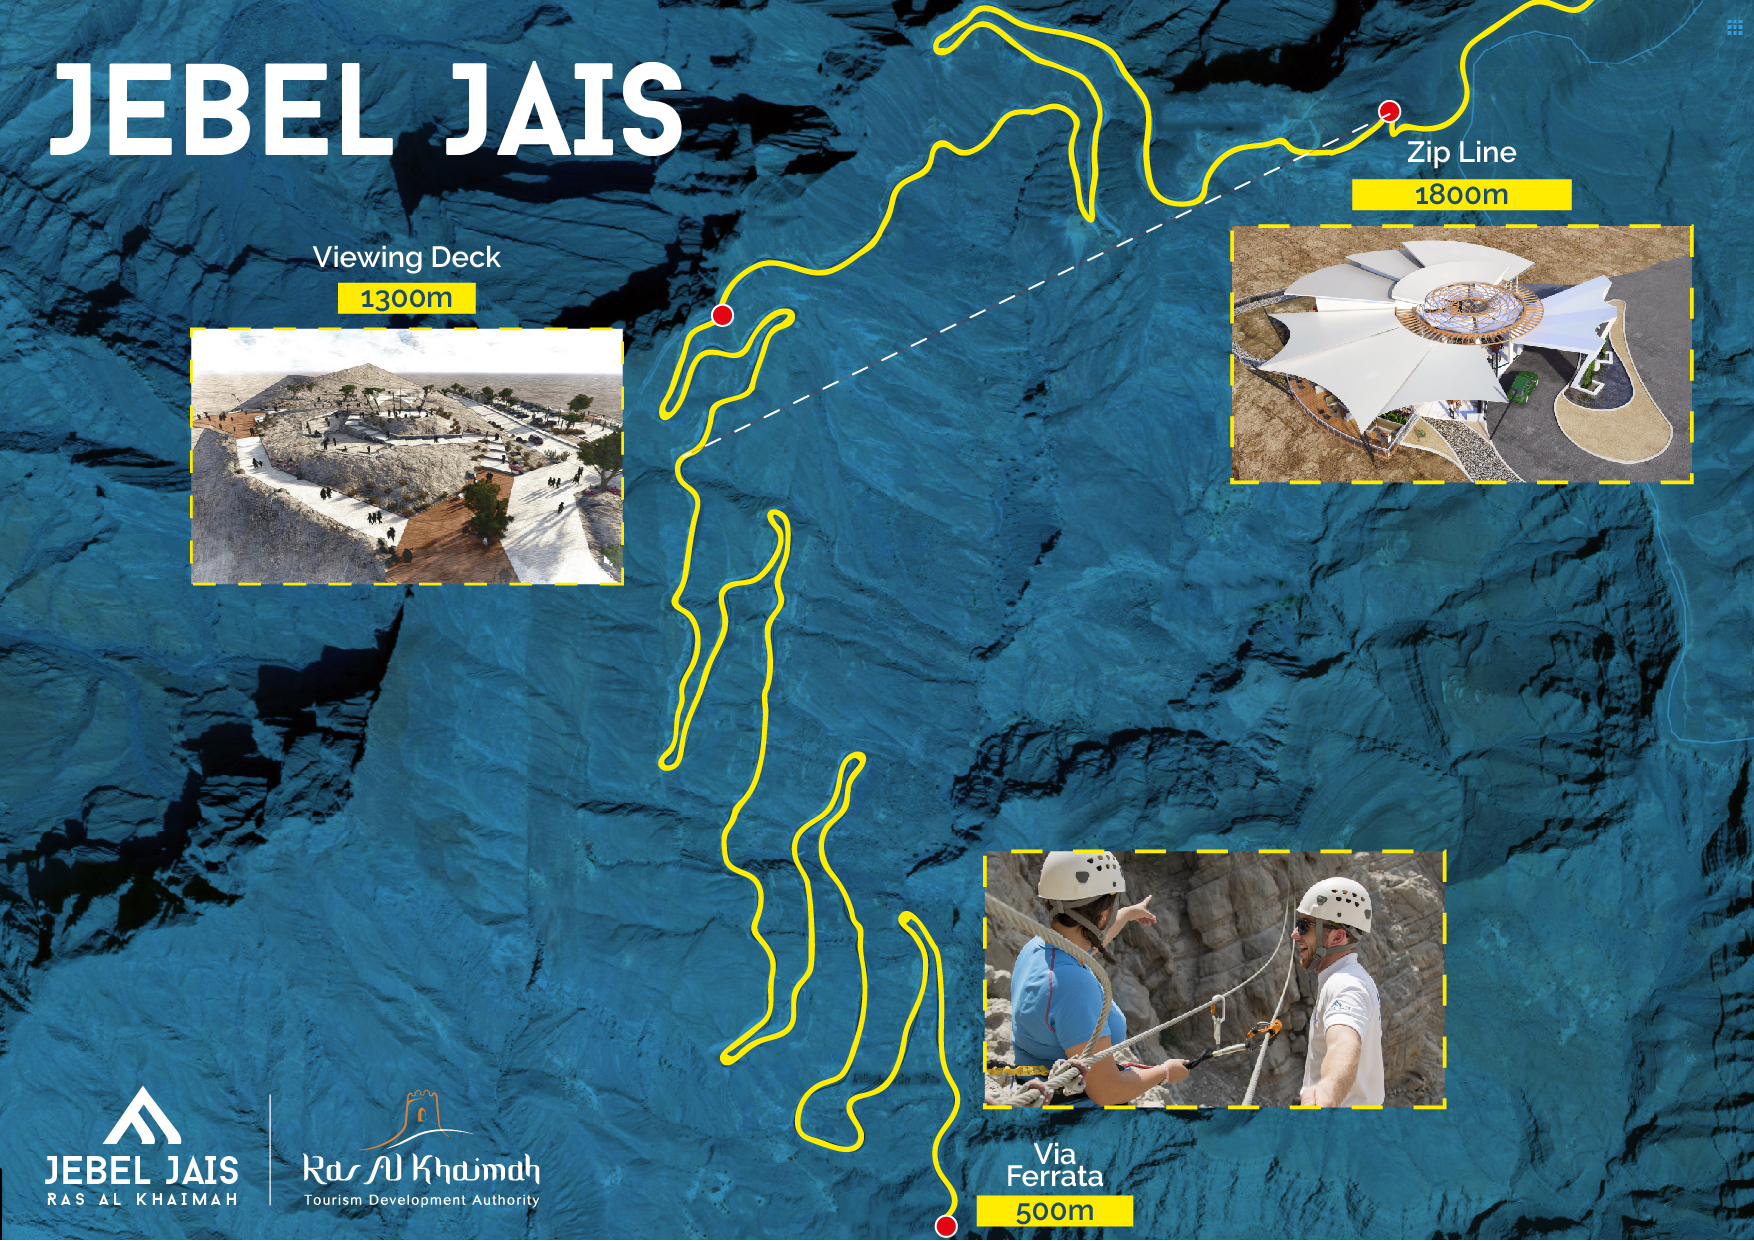 Map of the Jebel Jais mountain